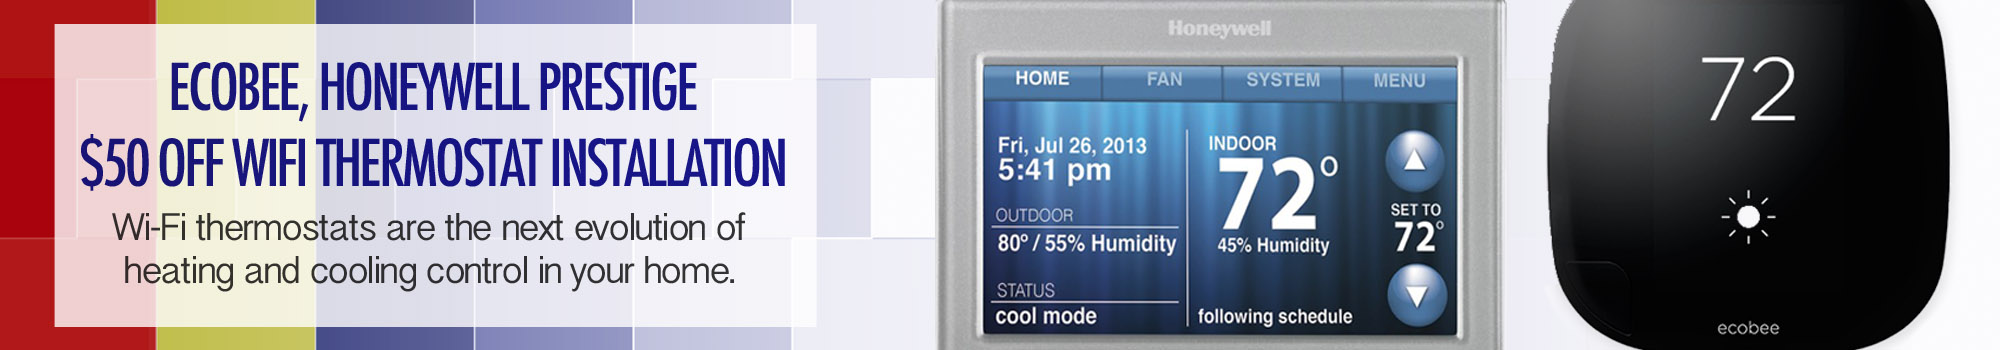 Call us for Wi-Fi Thermostat installations in Libertyville IL!